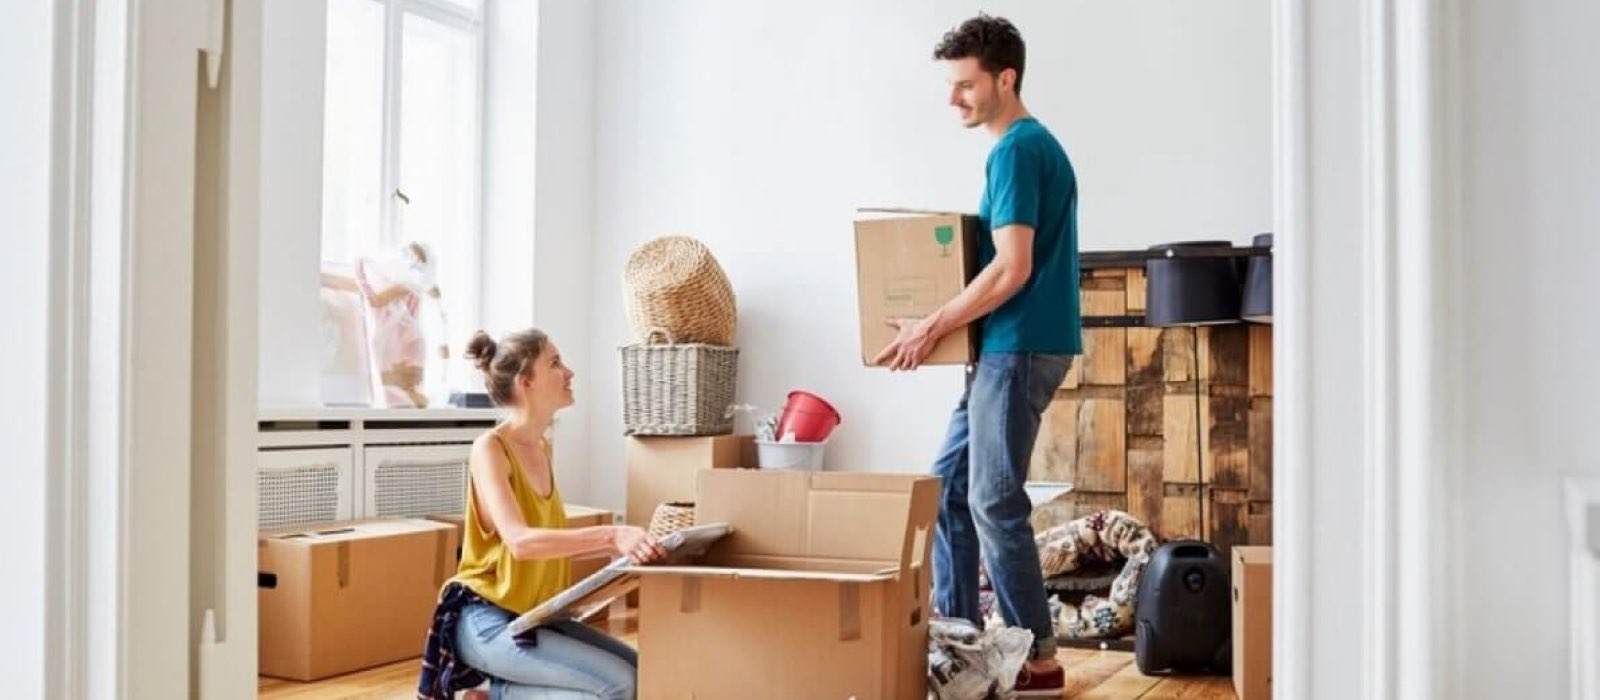 Home-Mover-Mortgage-for-Contractors.jpg